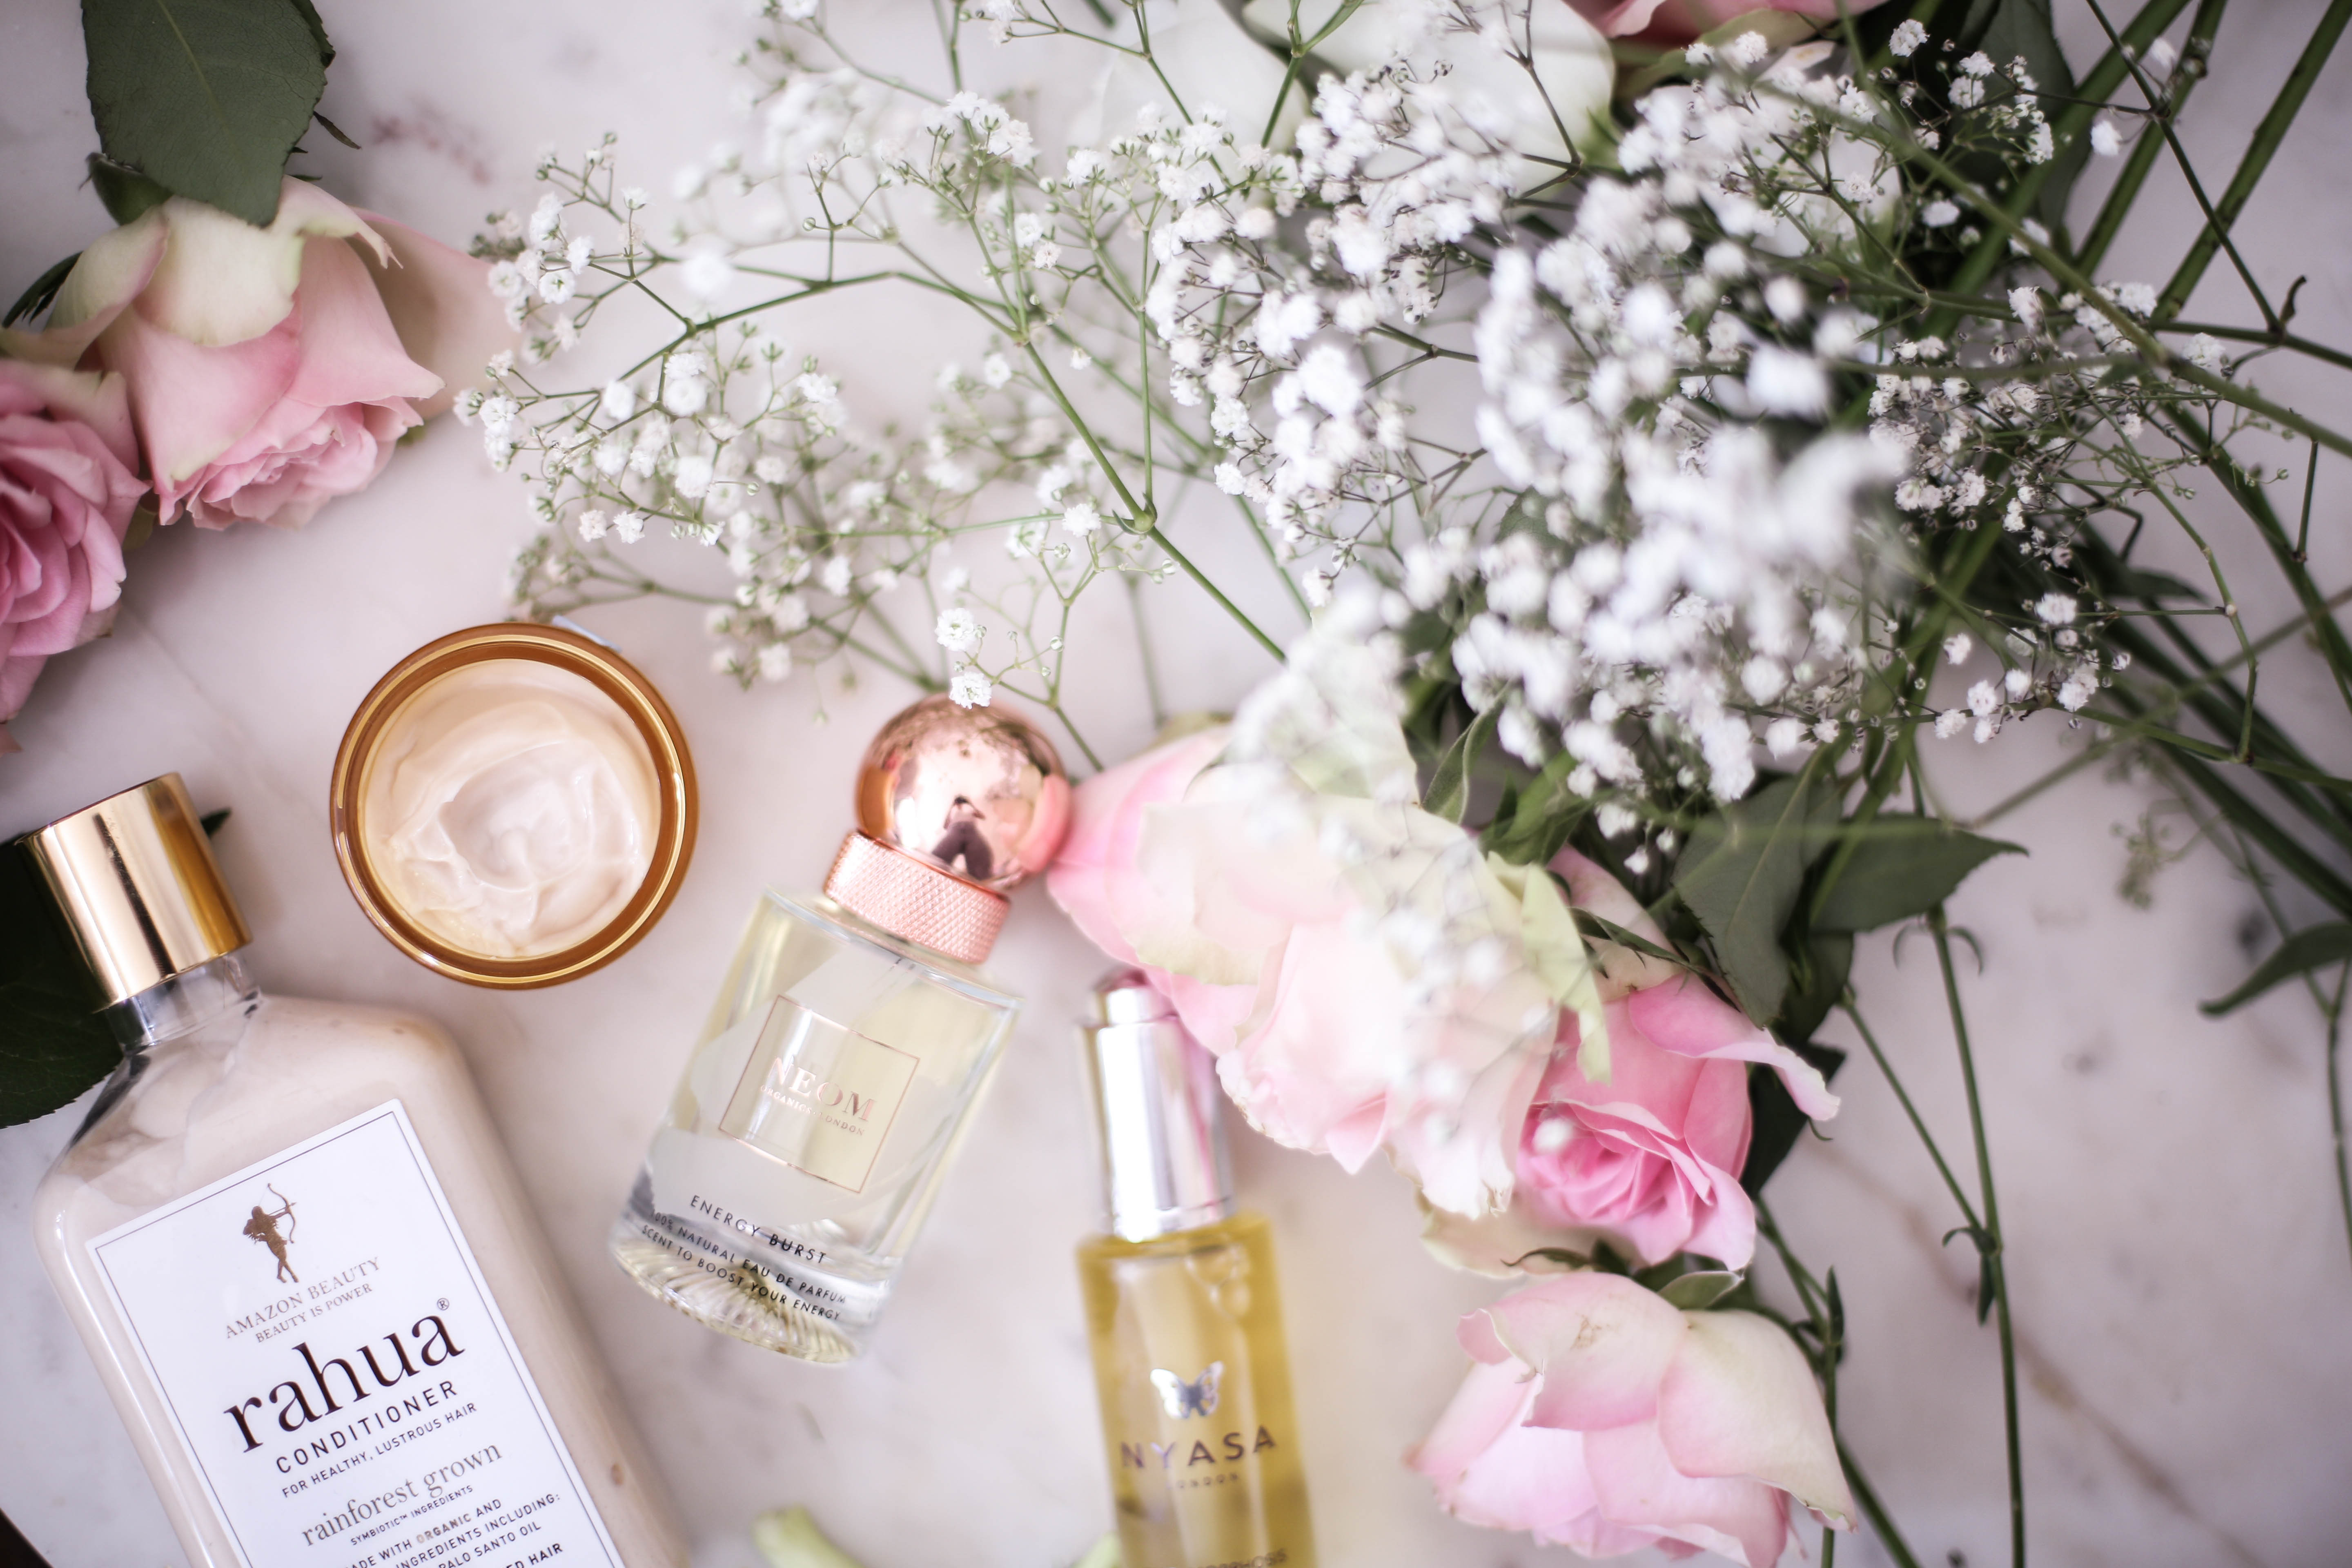 D Fashion Beauty Supply: 9 Products That Will Up Your Natural Beauty Game